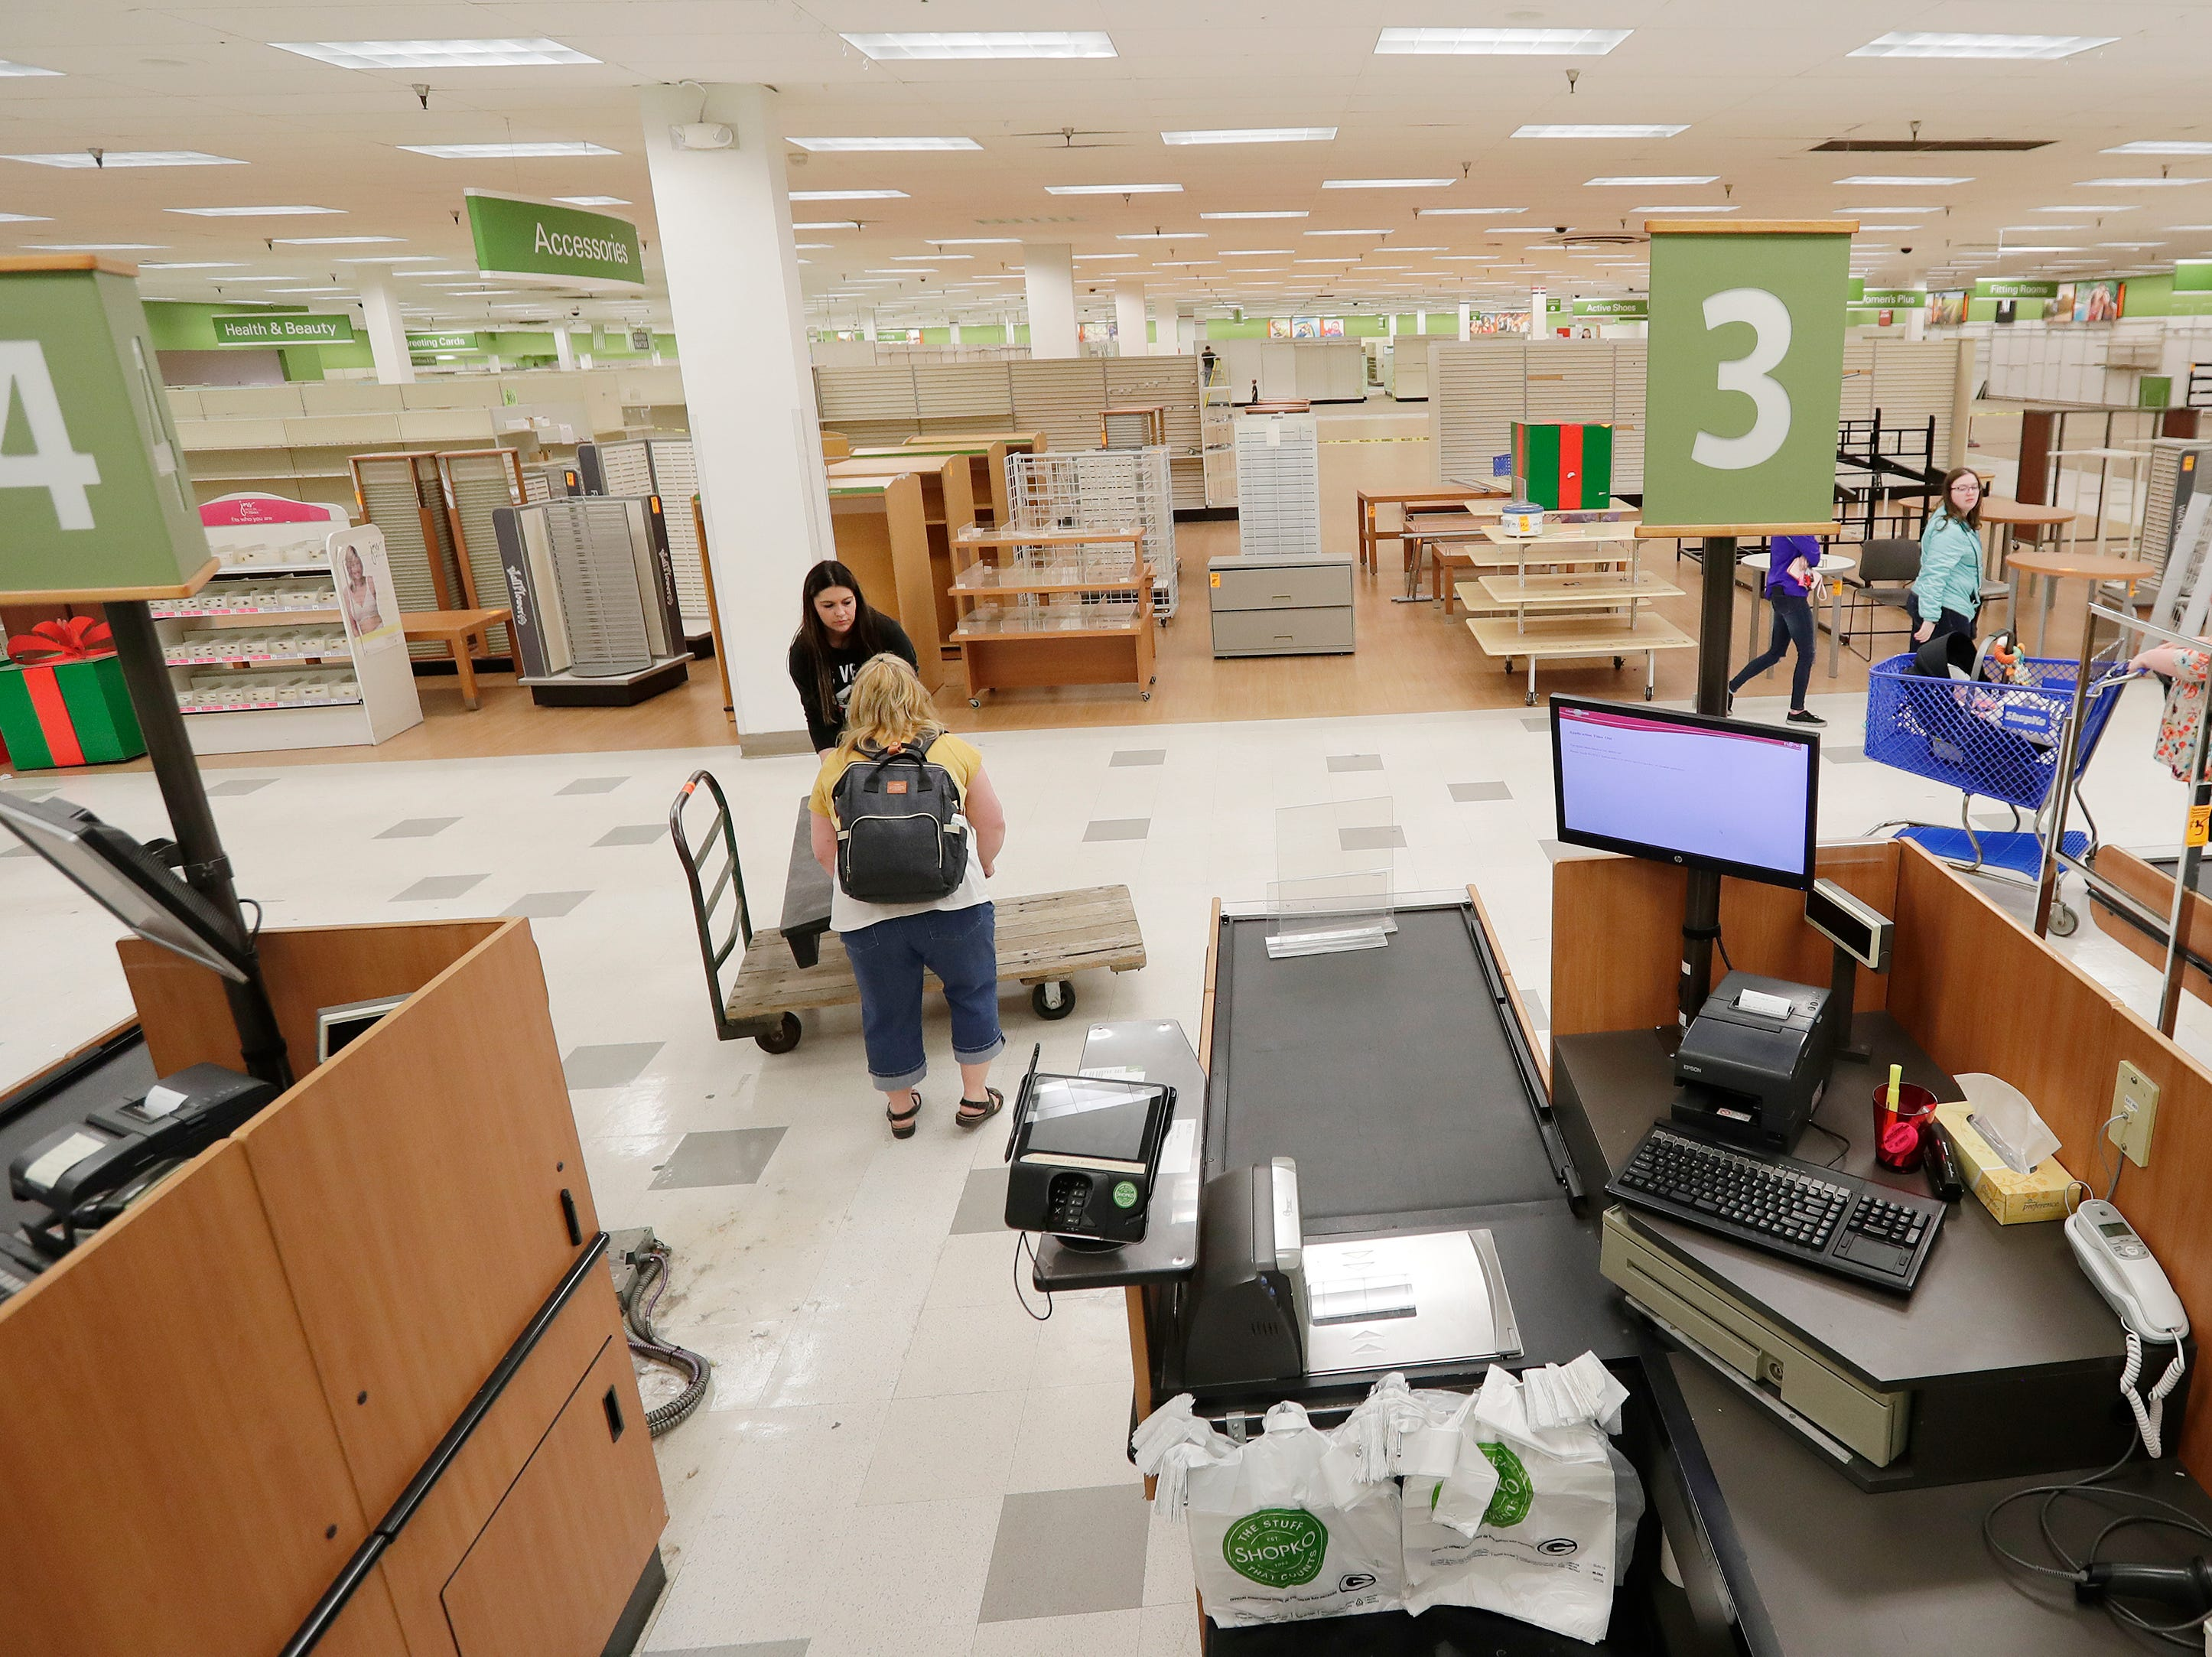 Customers purchase store fixtures on the final day of business at the Shopko on Military Ave on Monday, April 22, 2019 in Green Bay, Wis.